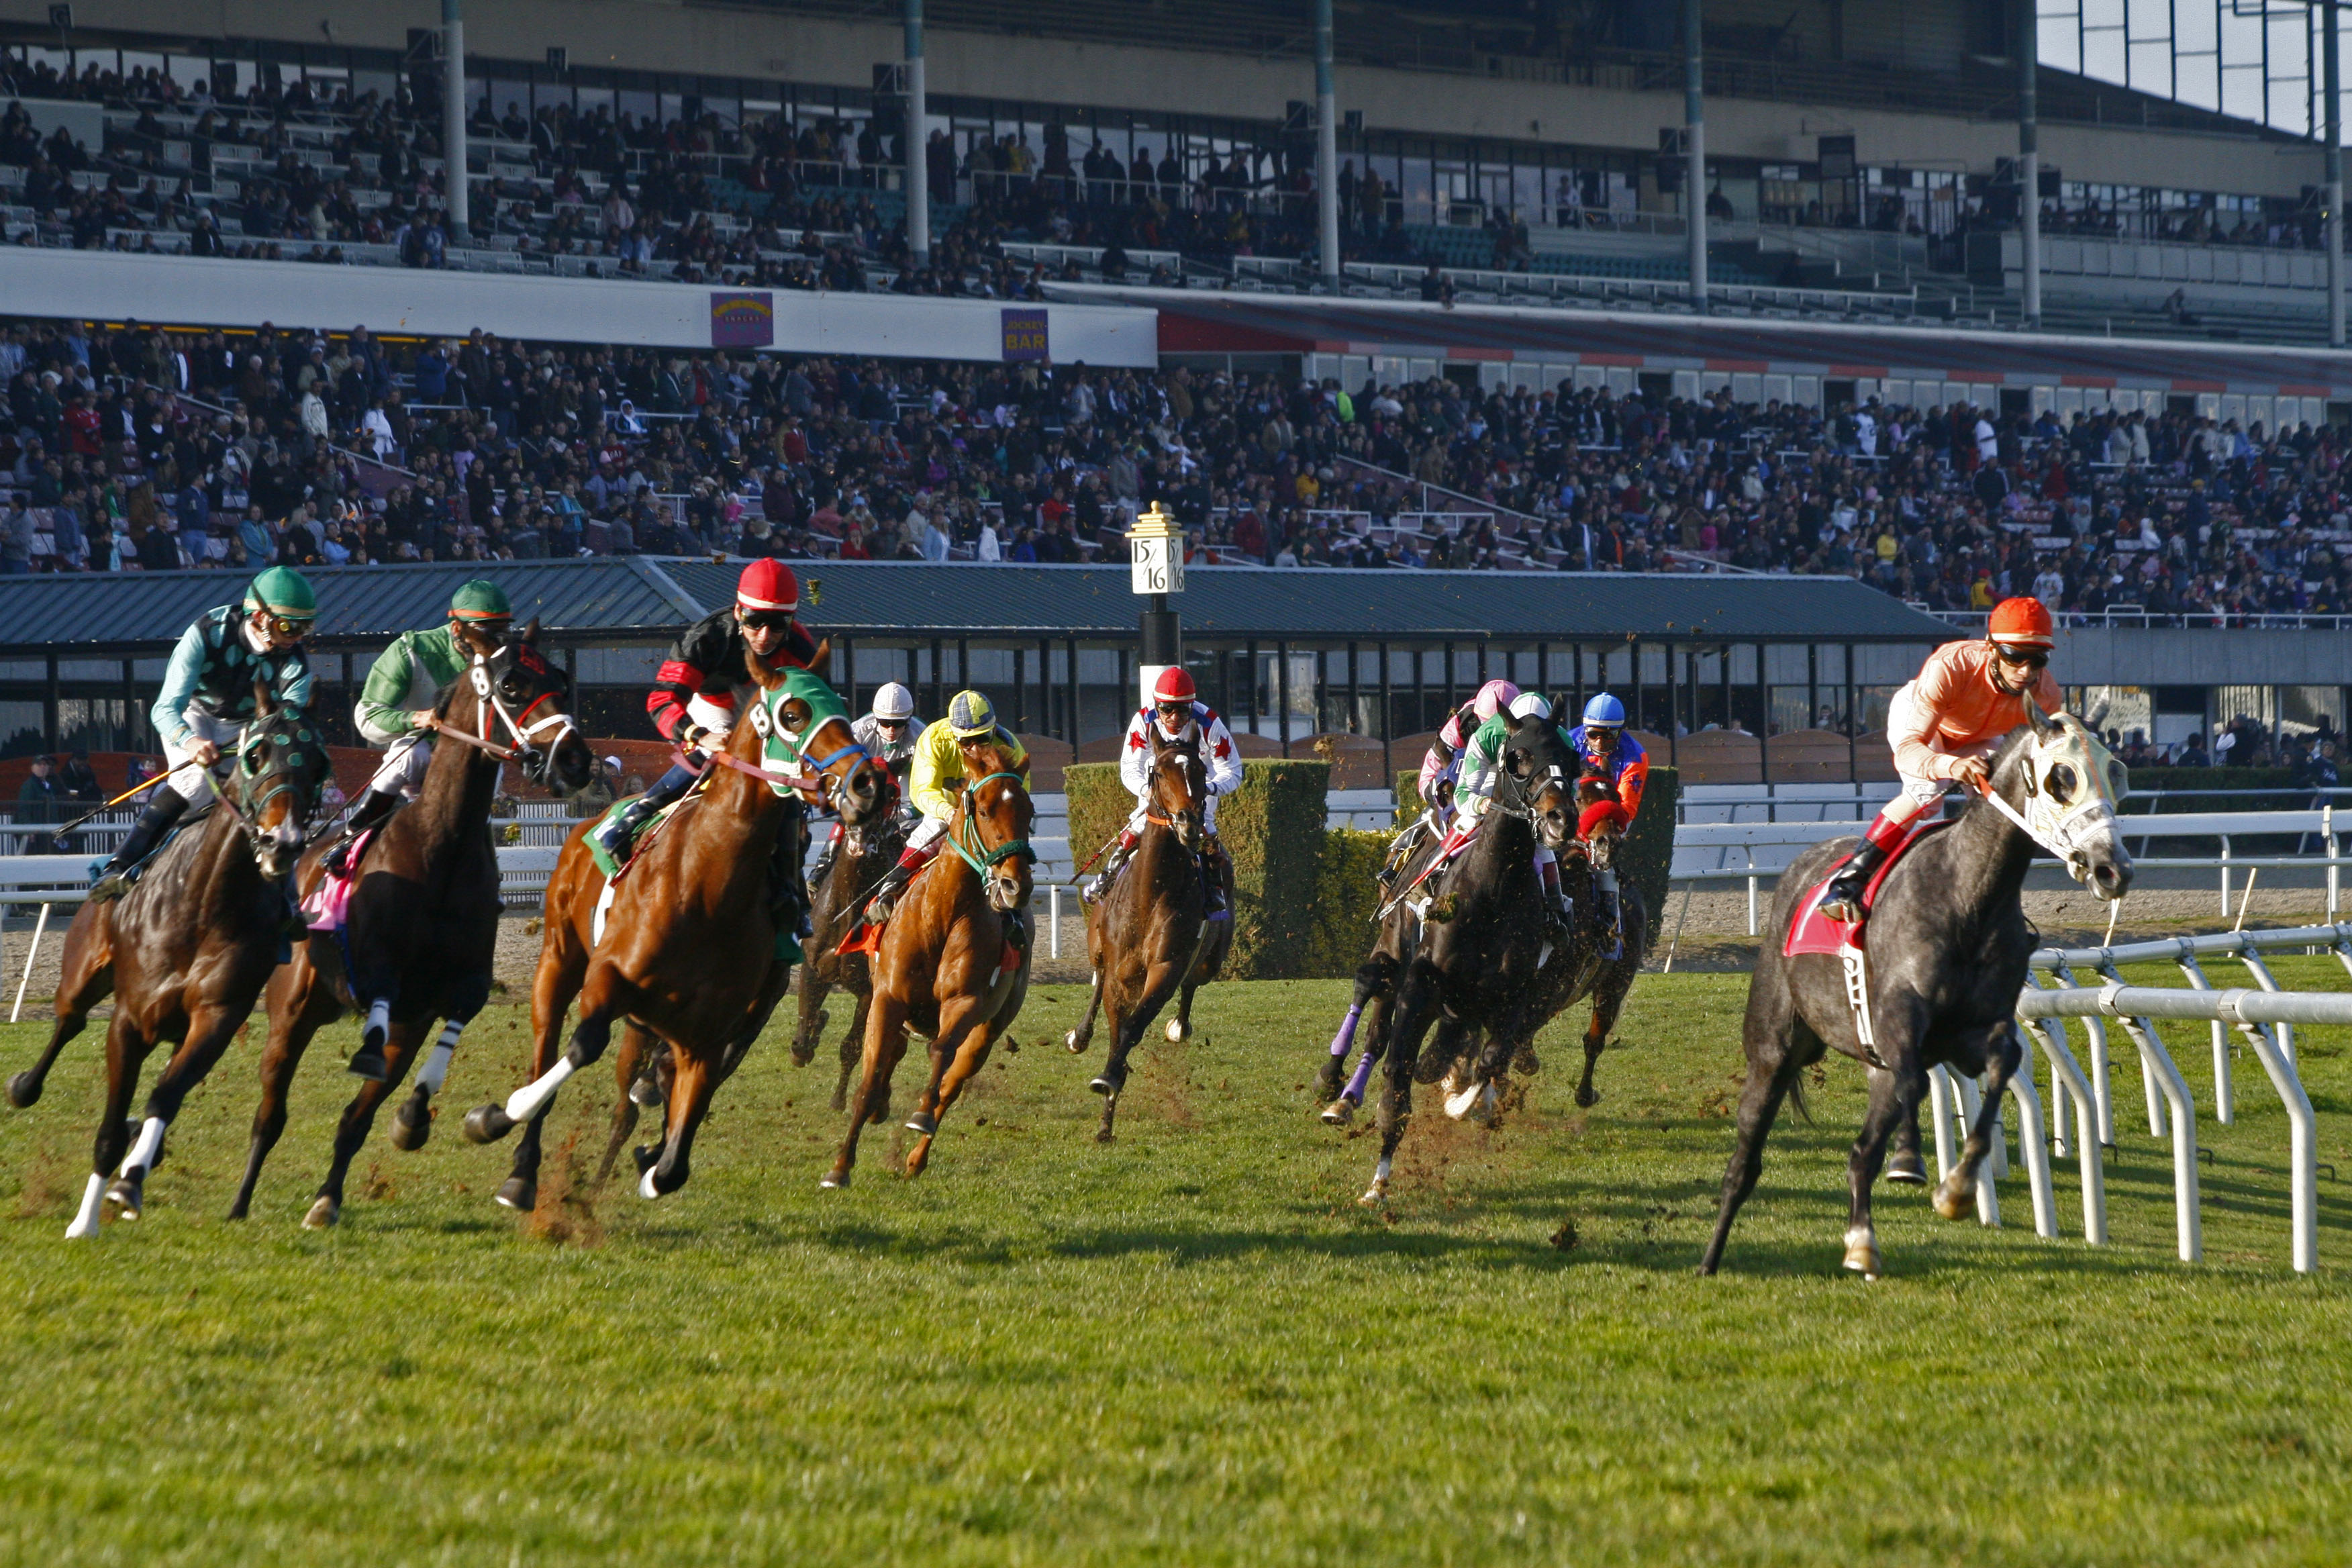 Racing at Golden Gate Fields